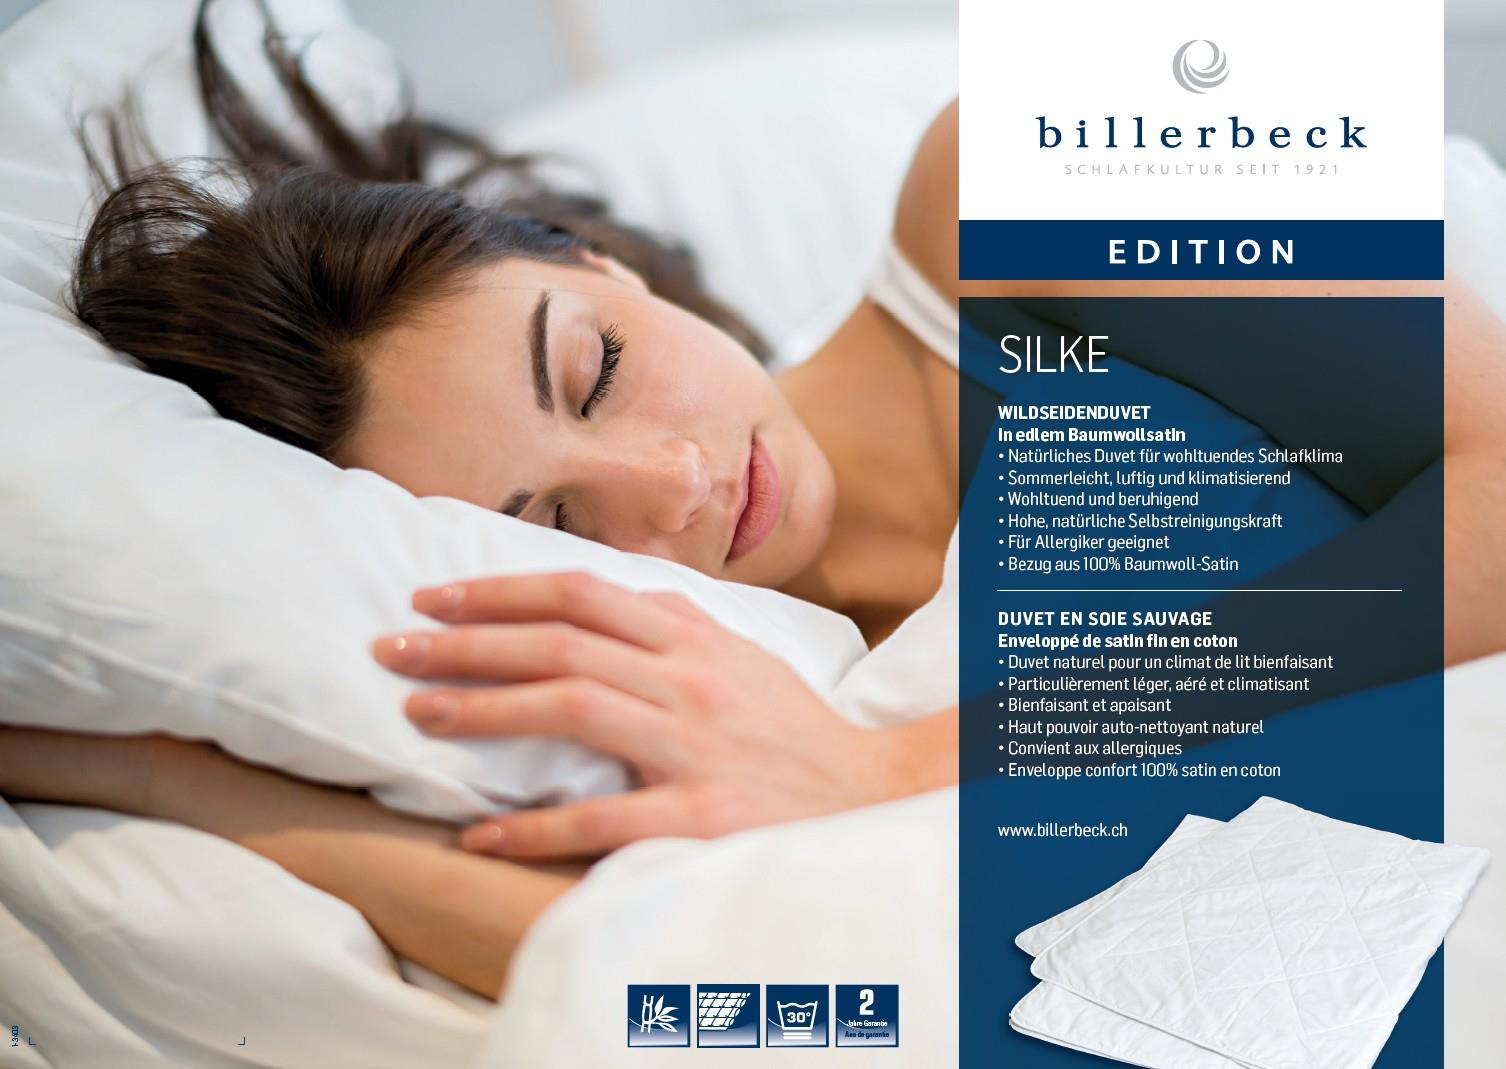 Billerbeck Baumwoll-decke Wash Cotton Uno Billerbeck Edition Silke 240 X 240 Cm 1050g